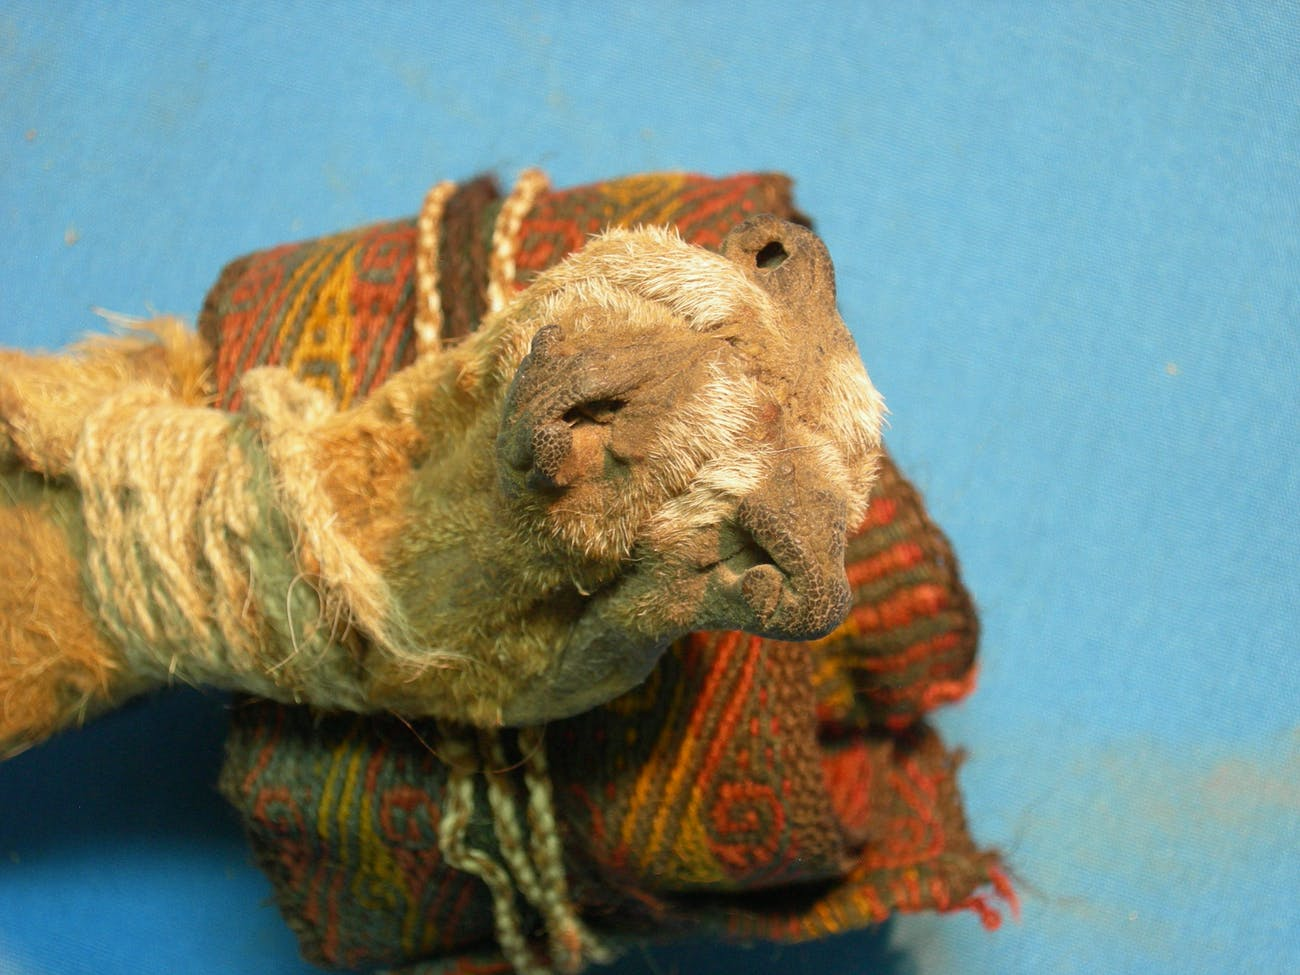 This thousand-year-old pouch, made from three fox snouts sewn together, contained chemical residues of several different psychoactive plants.